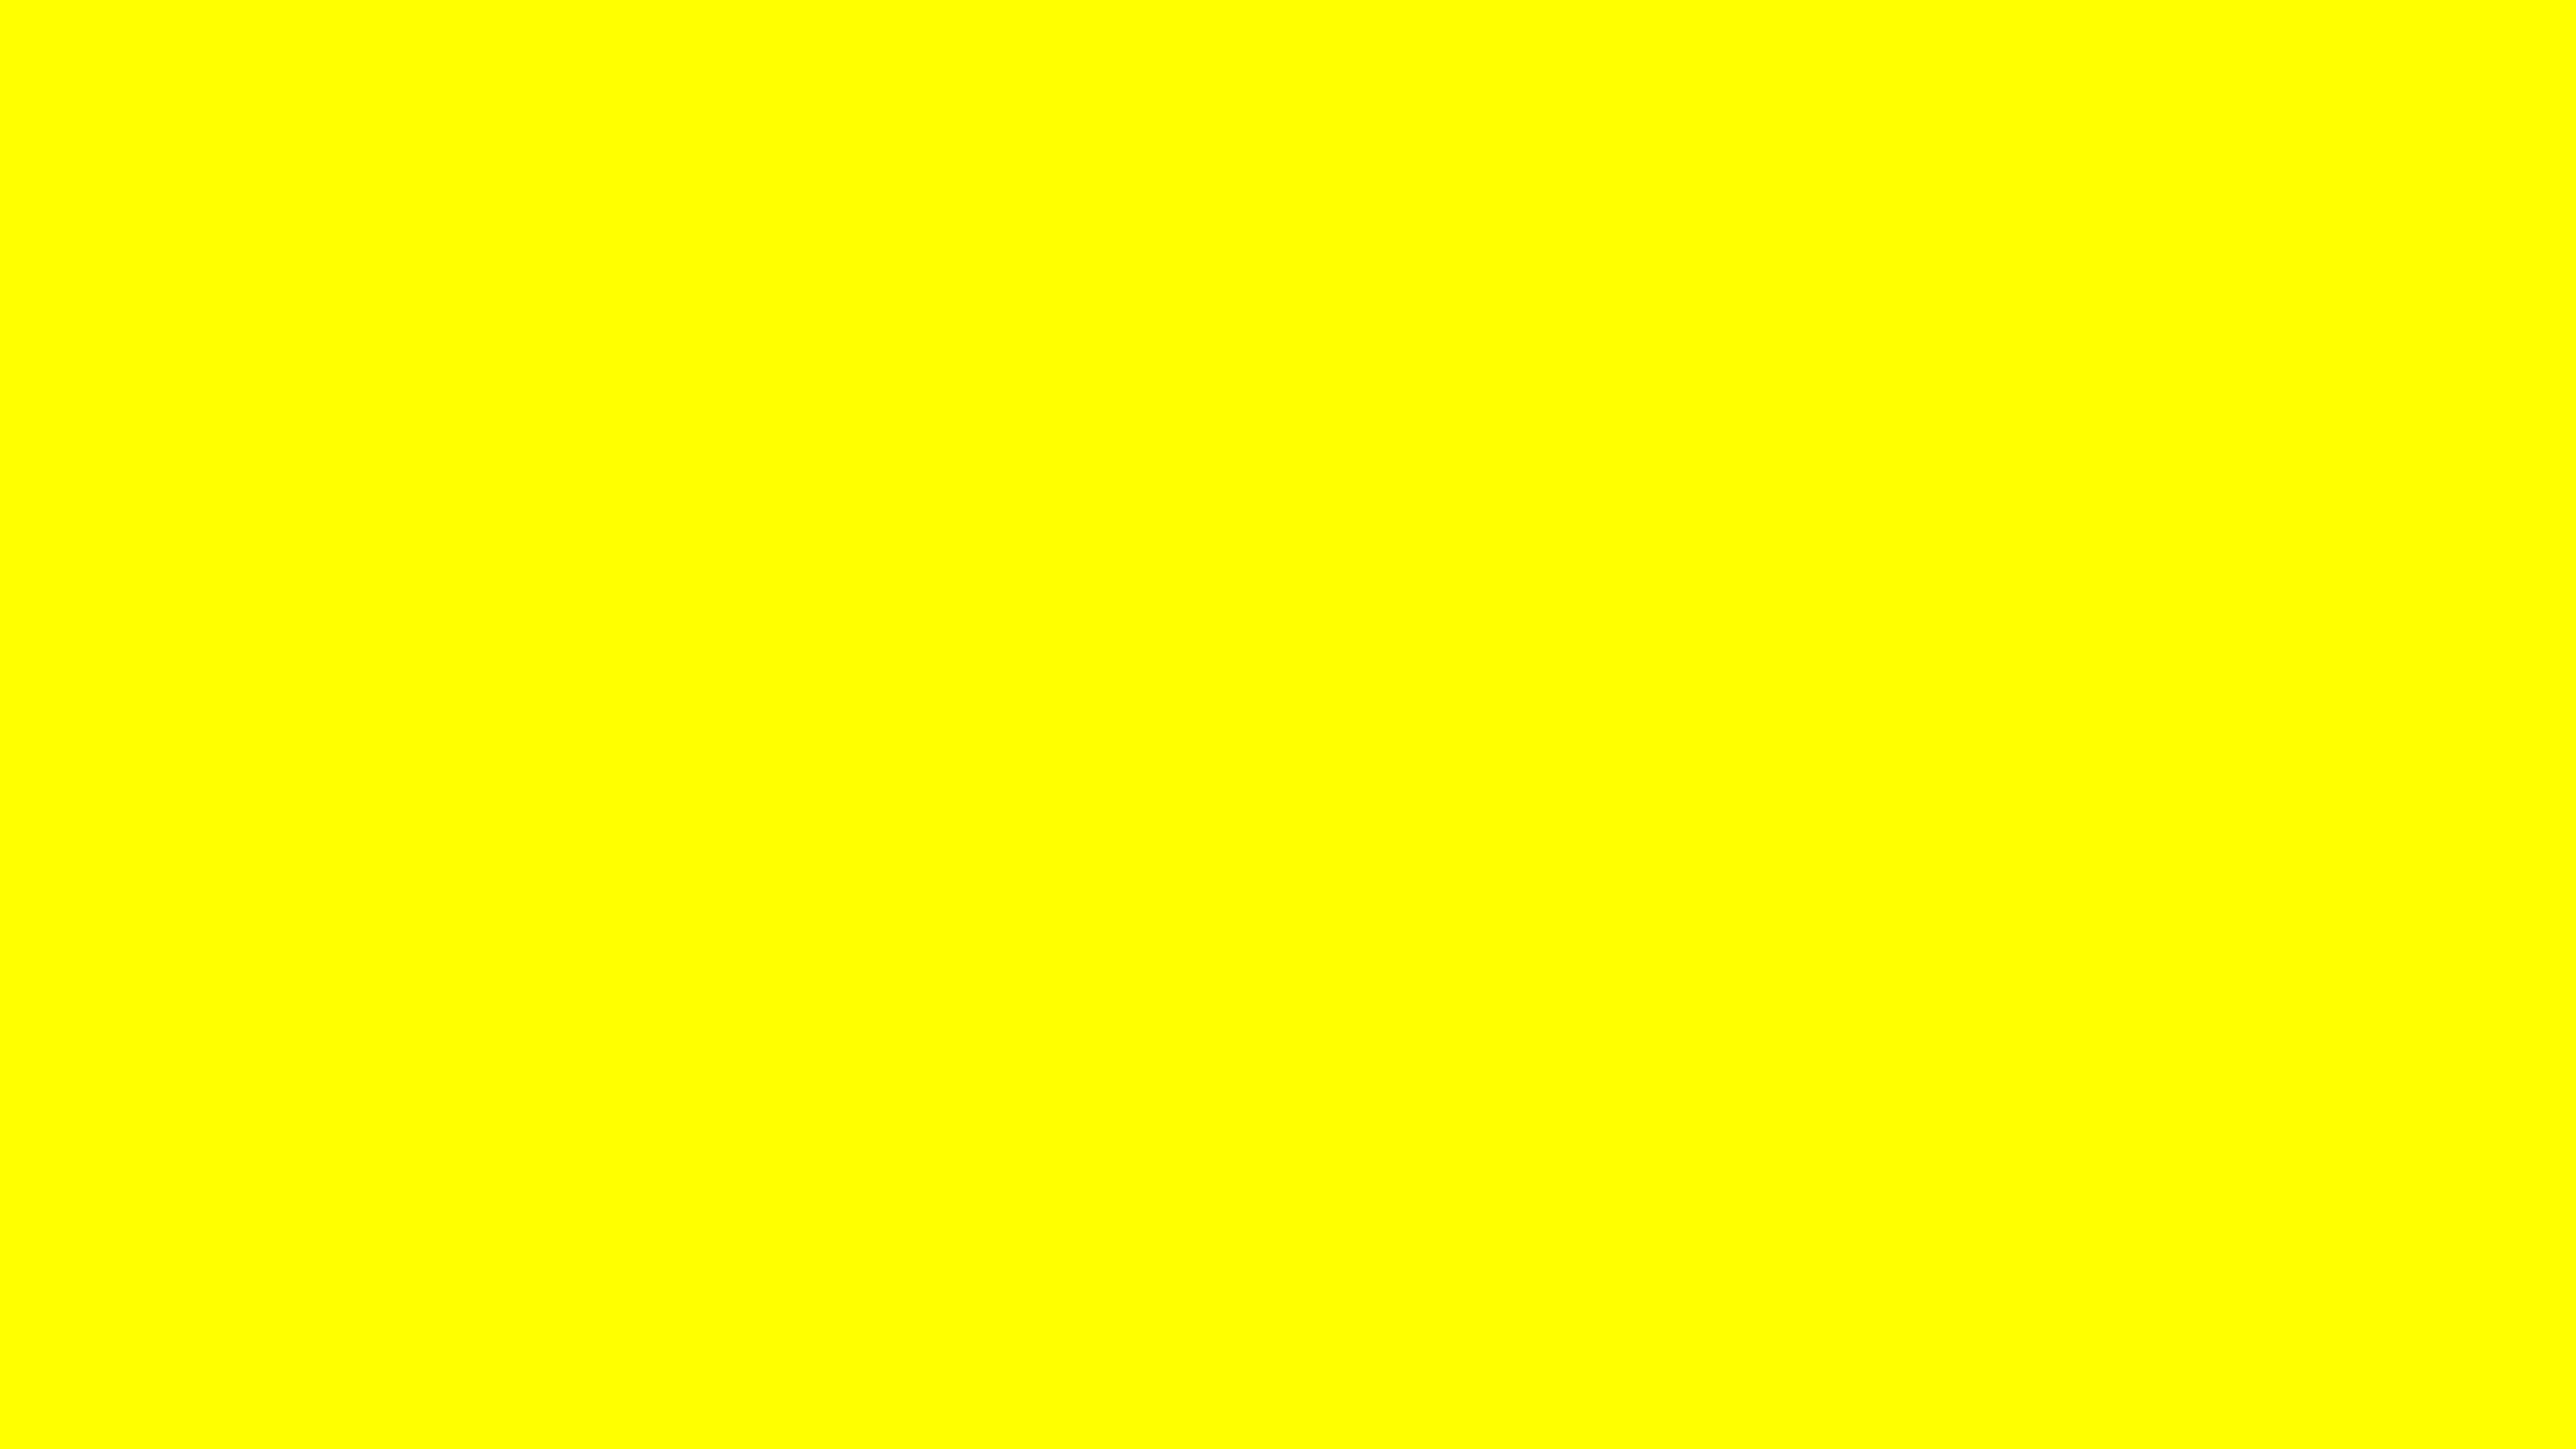 4096x2304 Yellow Solid Color Background